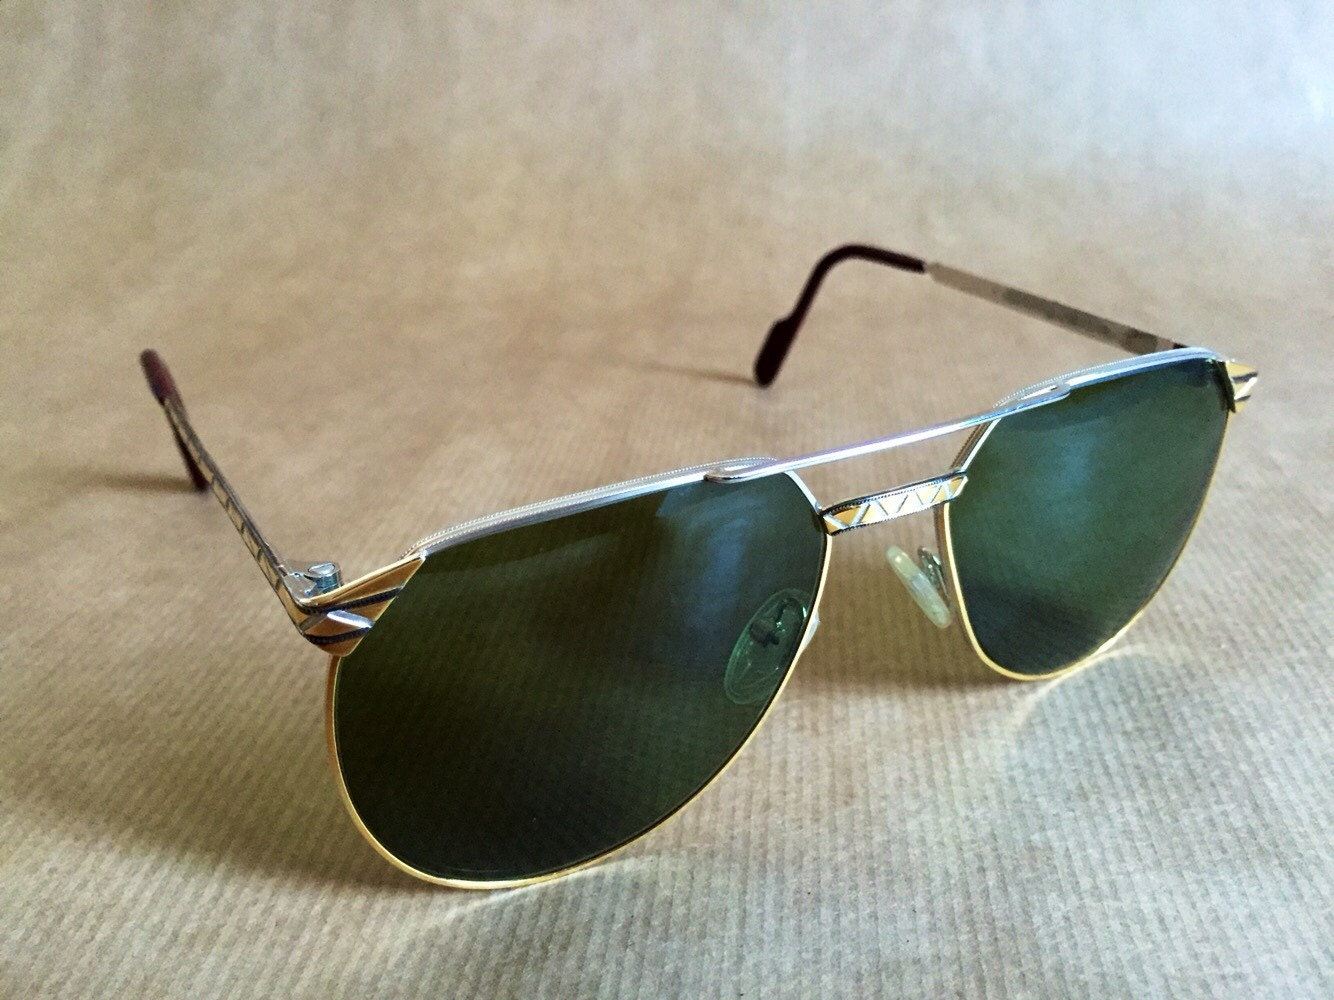 alpina m42 vintage sunglasses nos made in west germany